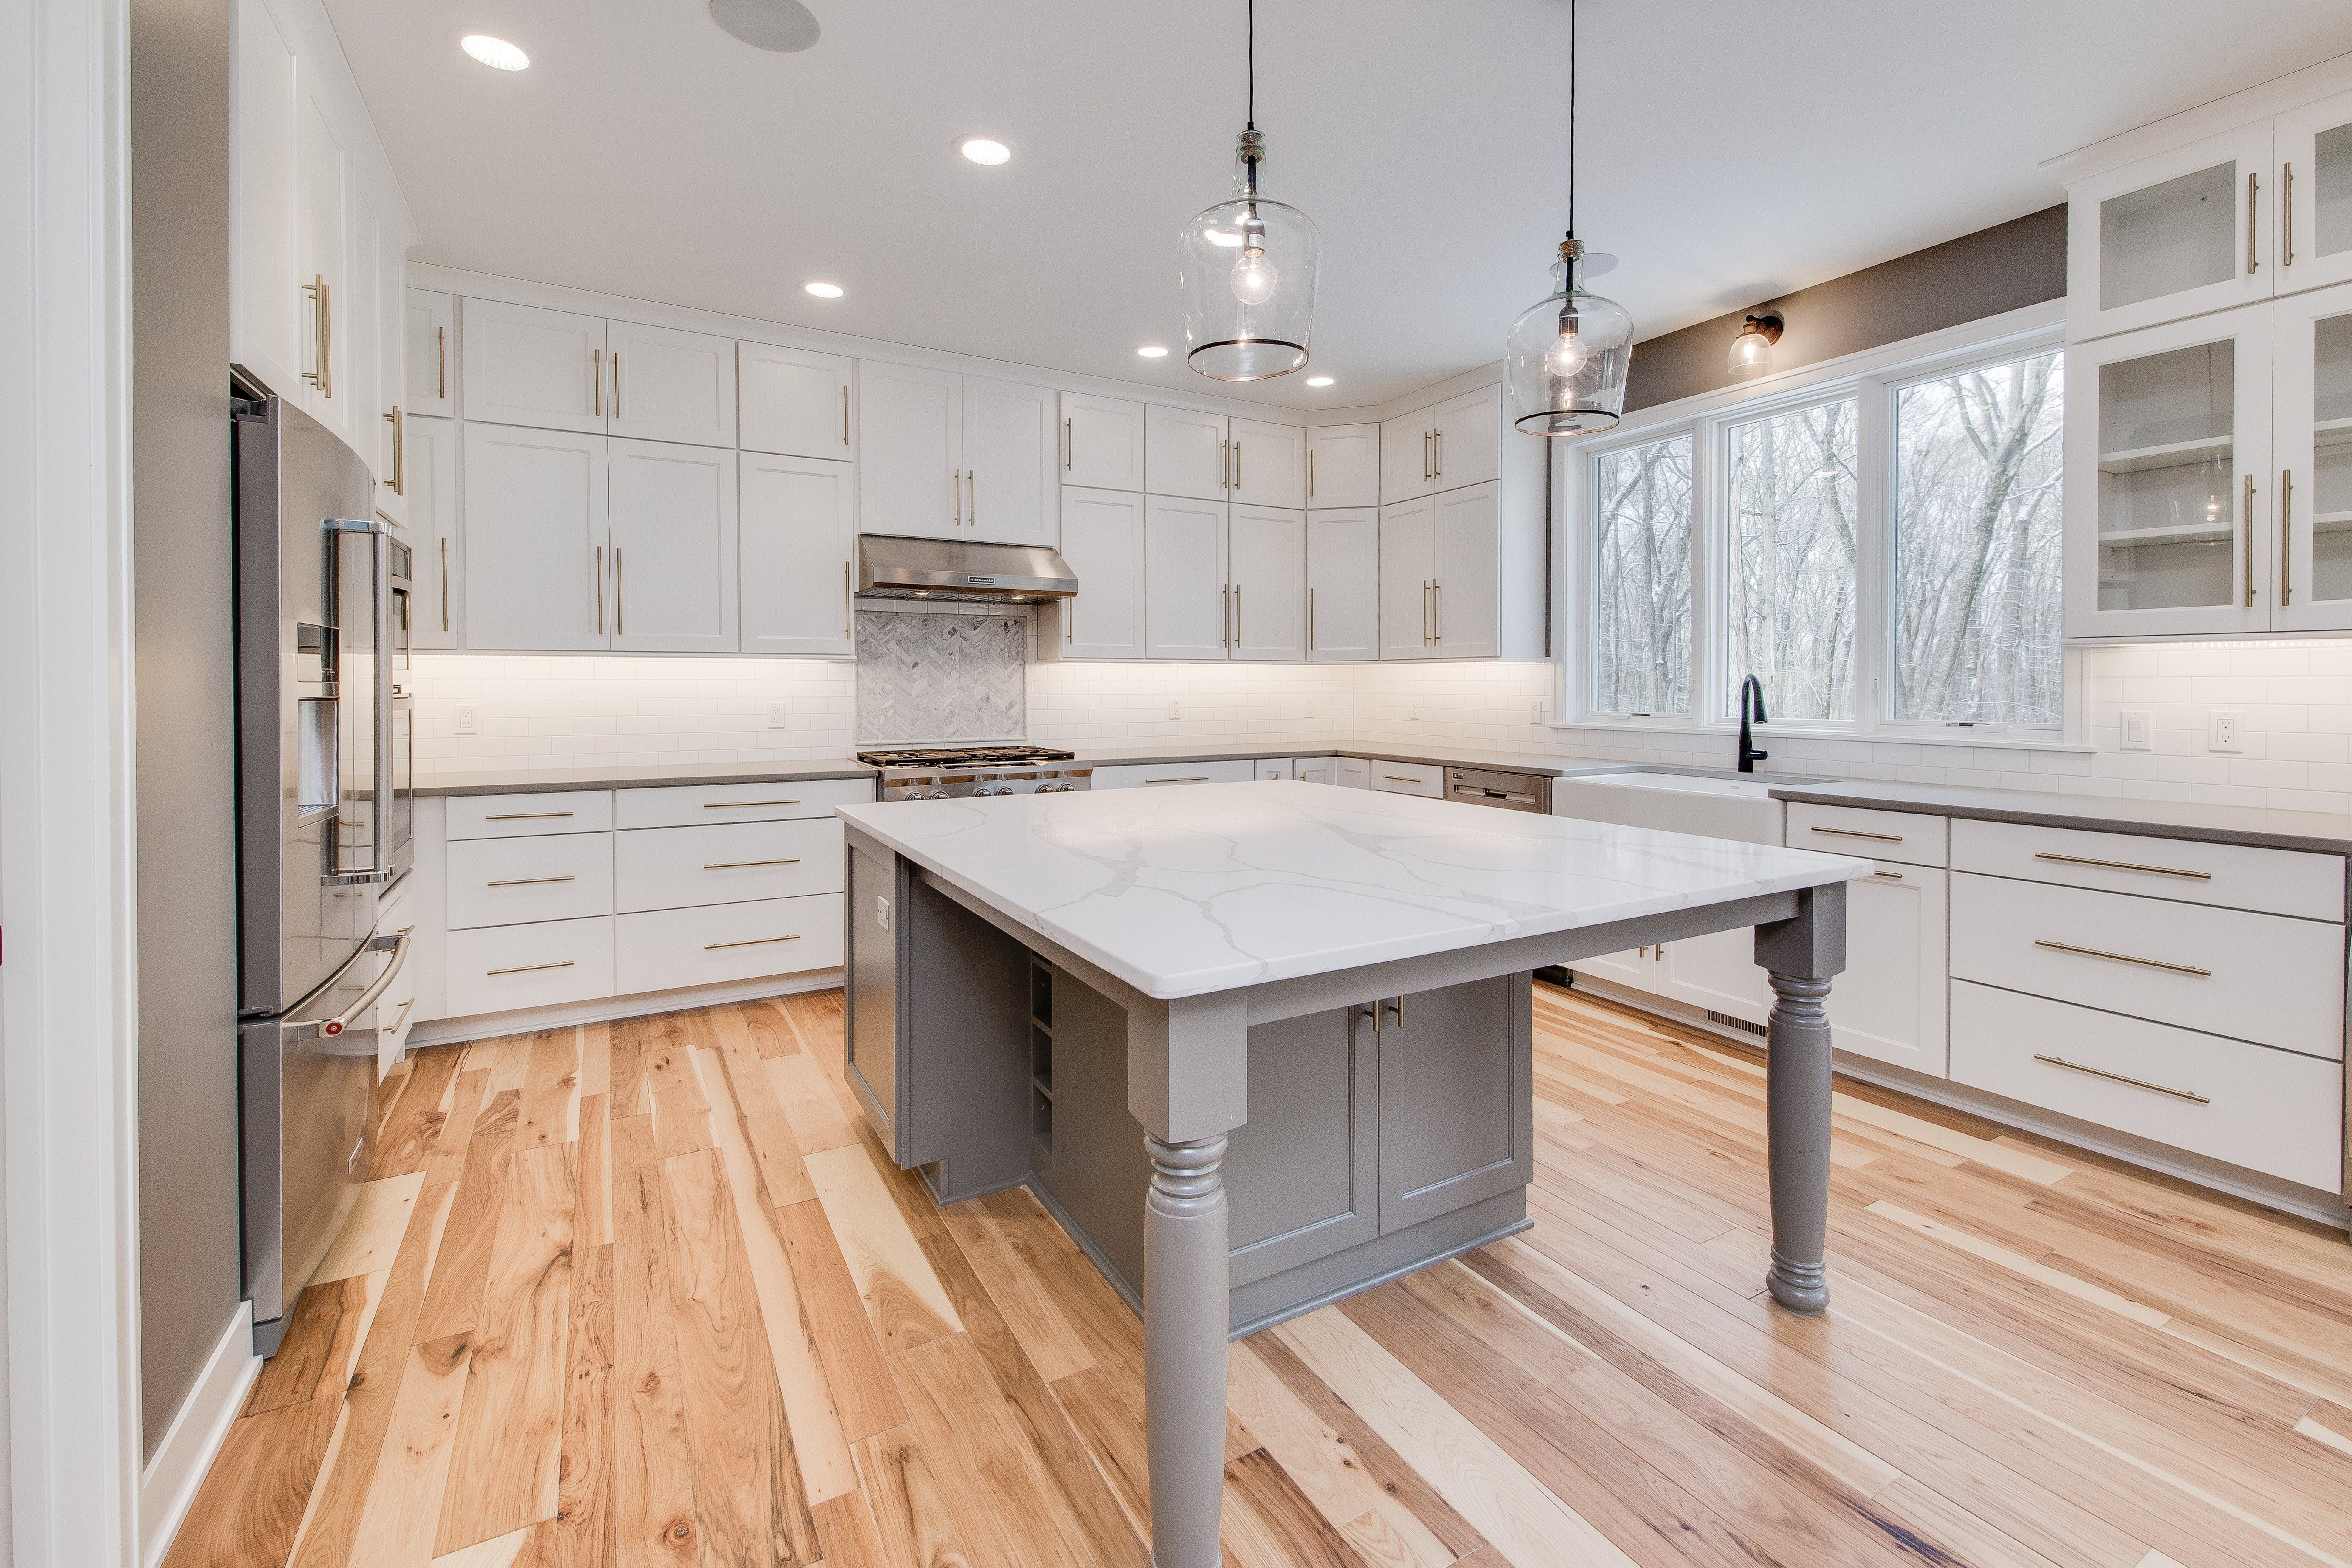 Kitchen Natural Hickory Hardwood Floors Contrasting Painted Island And Cabinets Natural Slate Count Hickory Flooring Country Kitchen Countertops Countertops